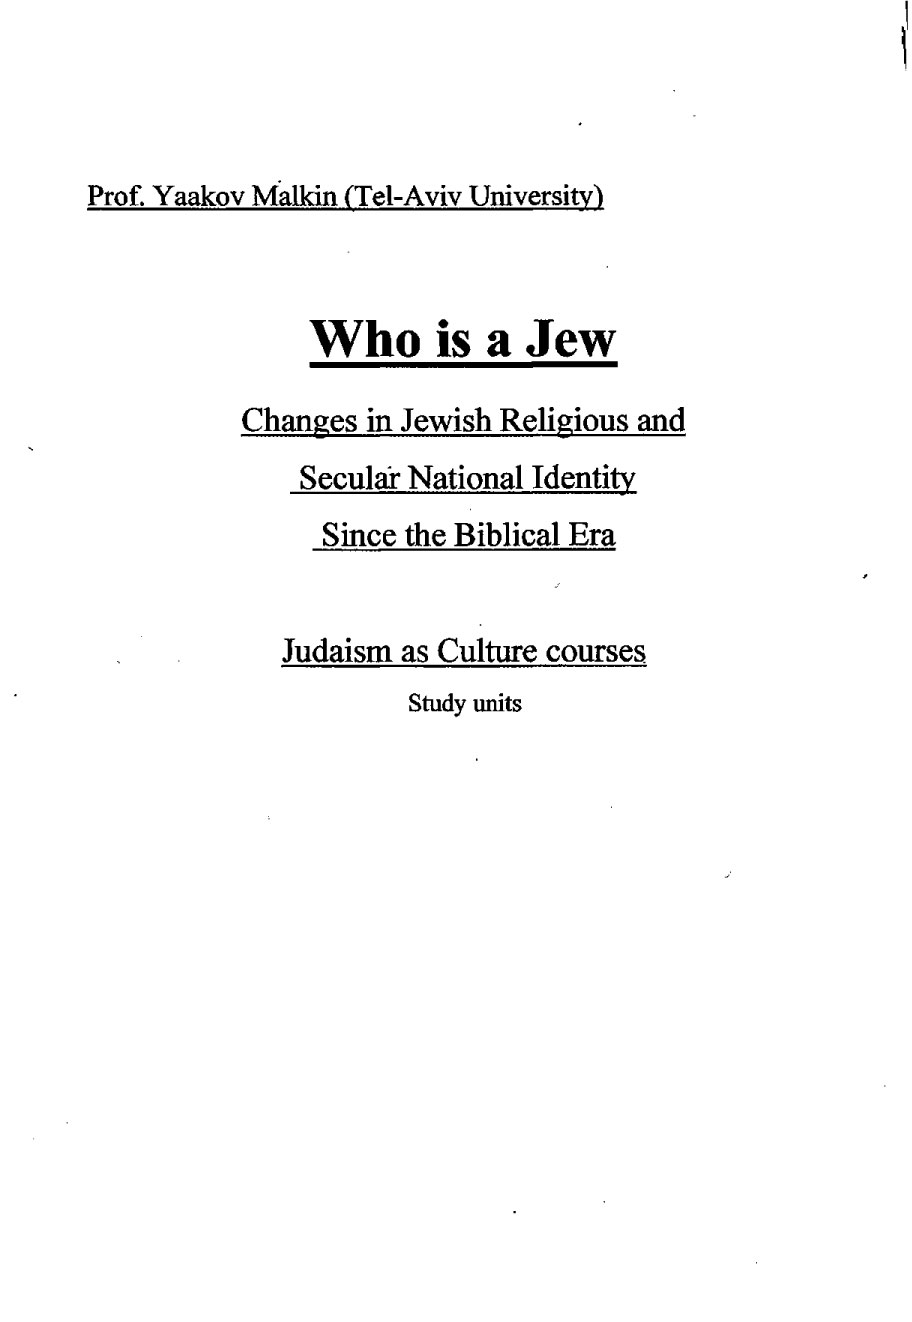 who is a jew - Yaakov Malkin, English, 2006